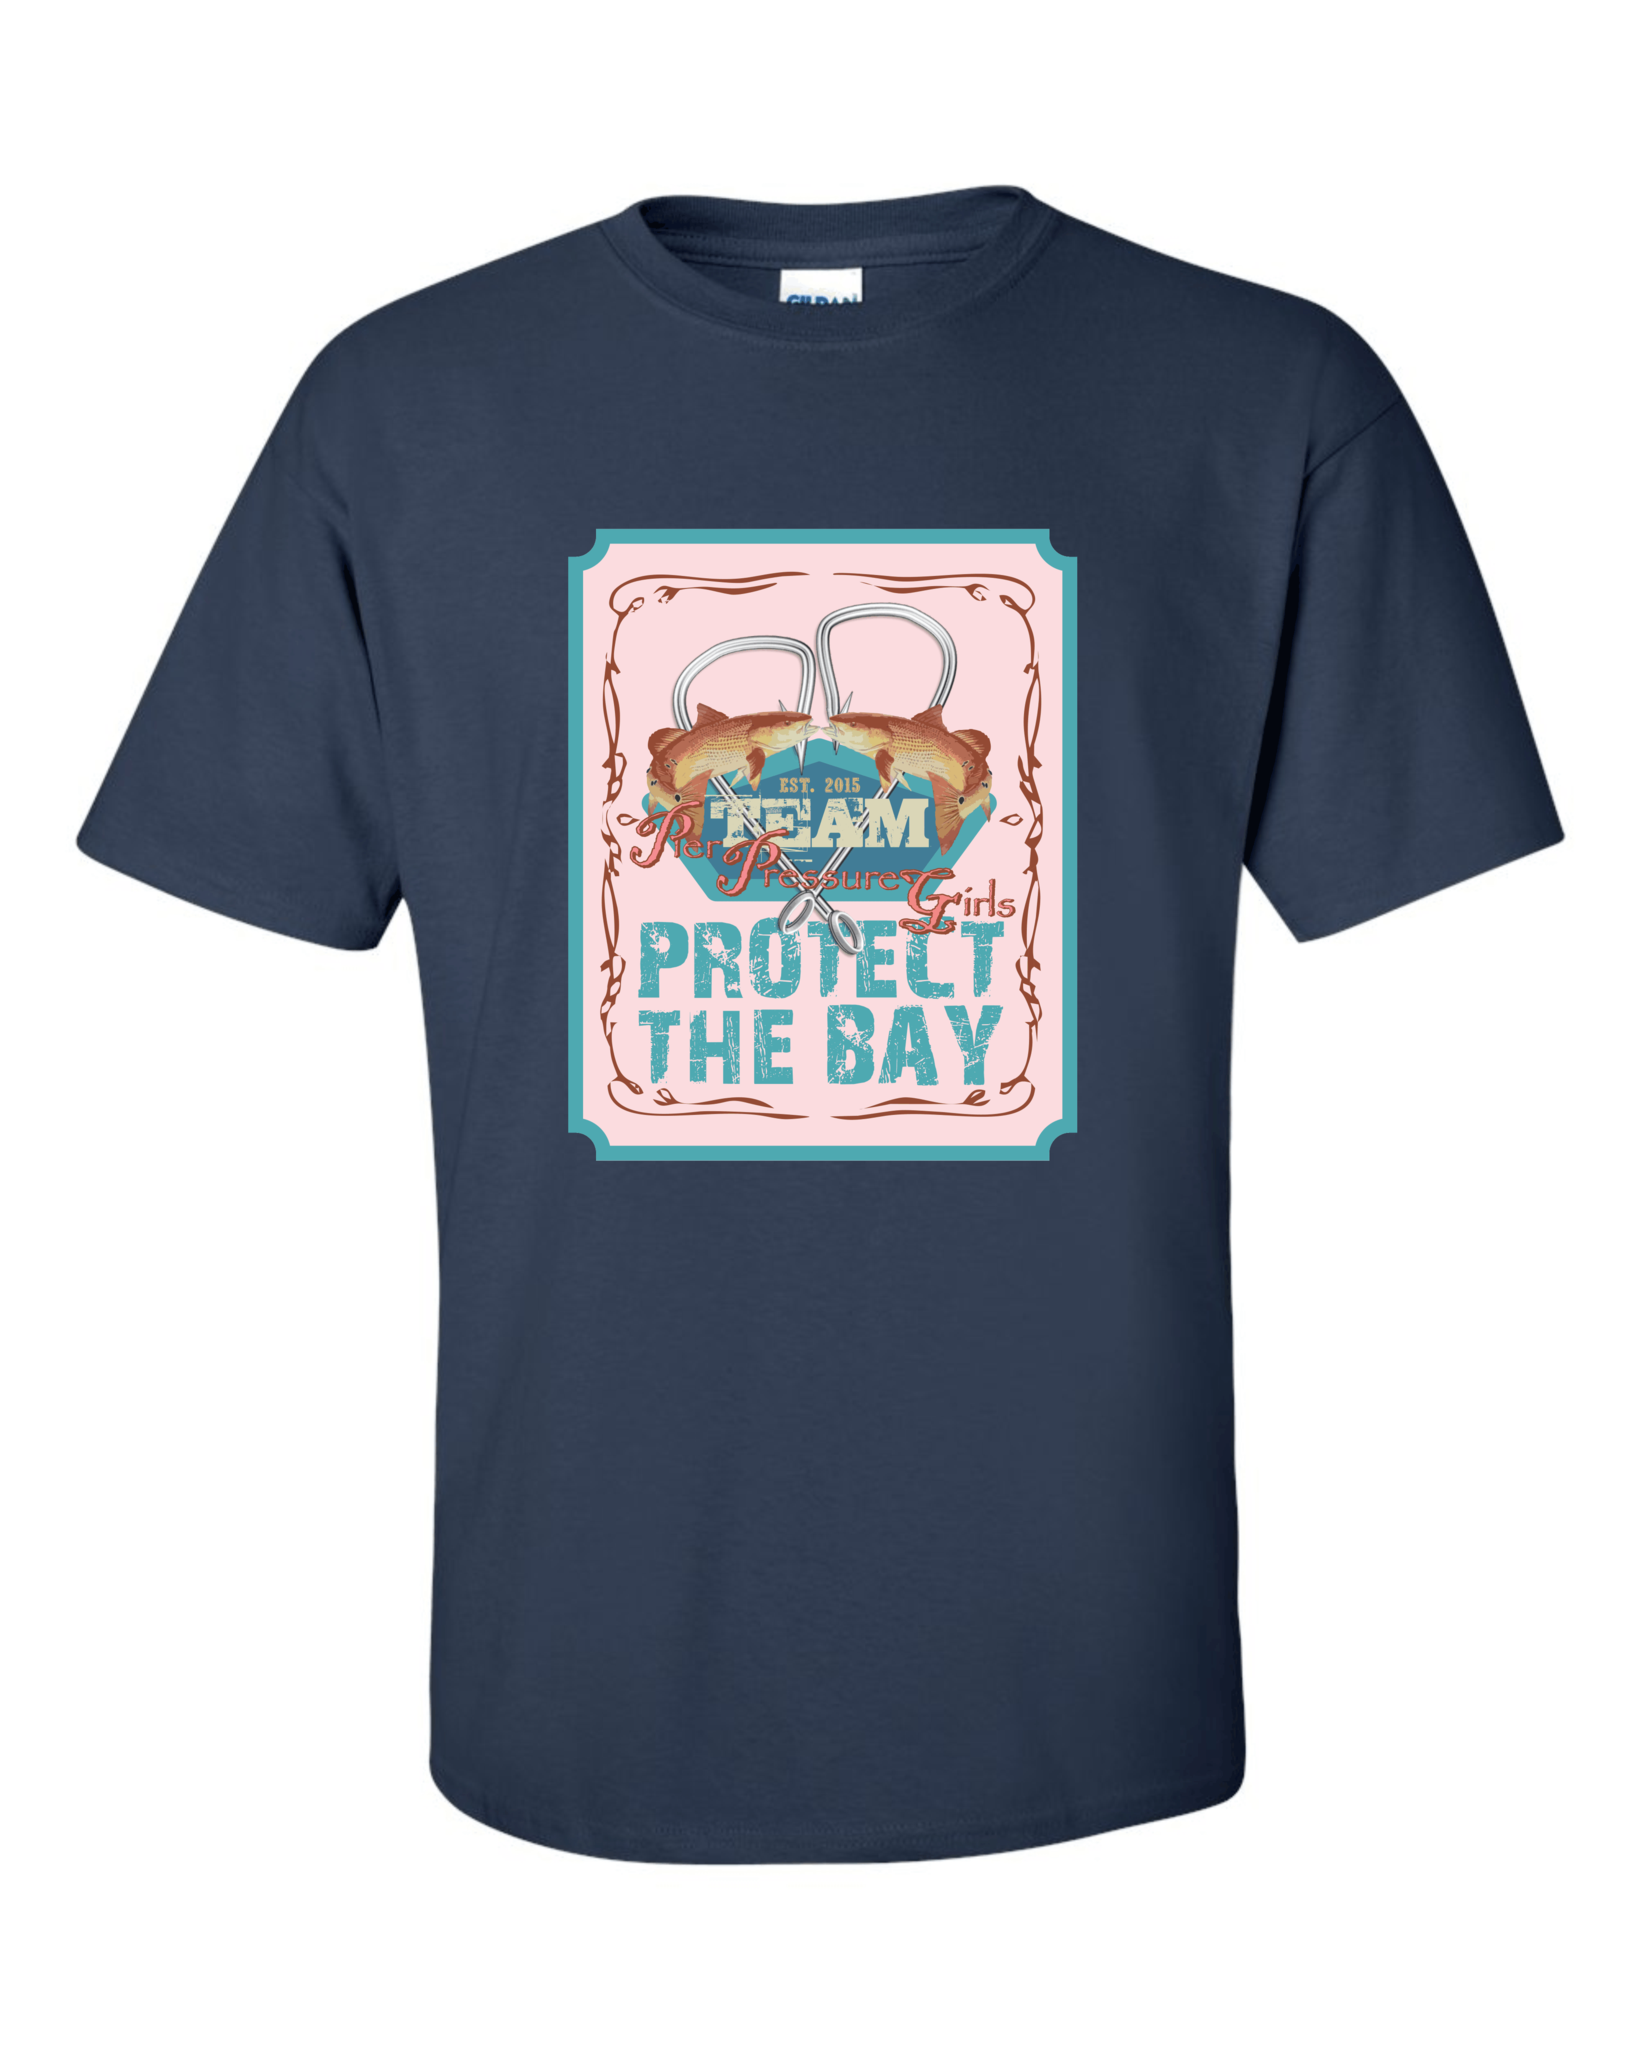 PROTECT THE BAY - Adult Short Sleeve Unisex T-shirt